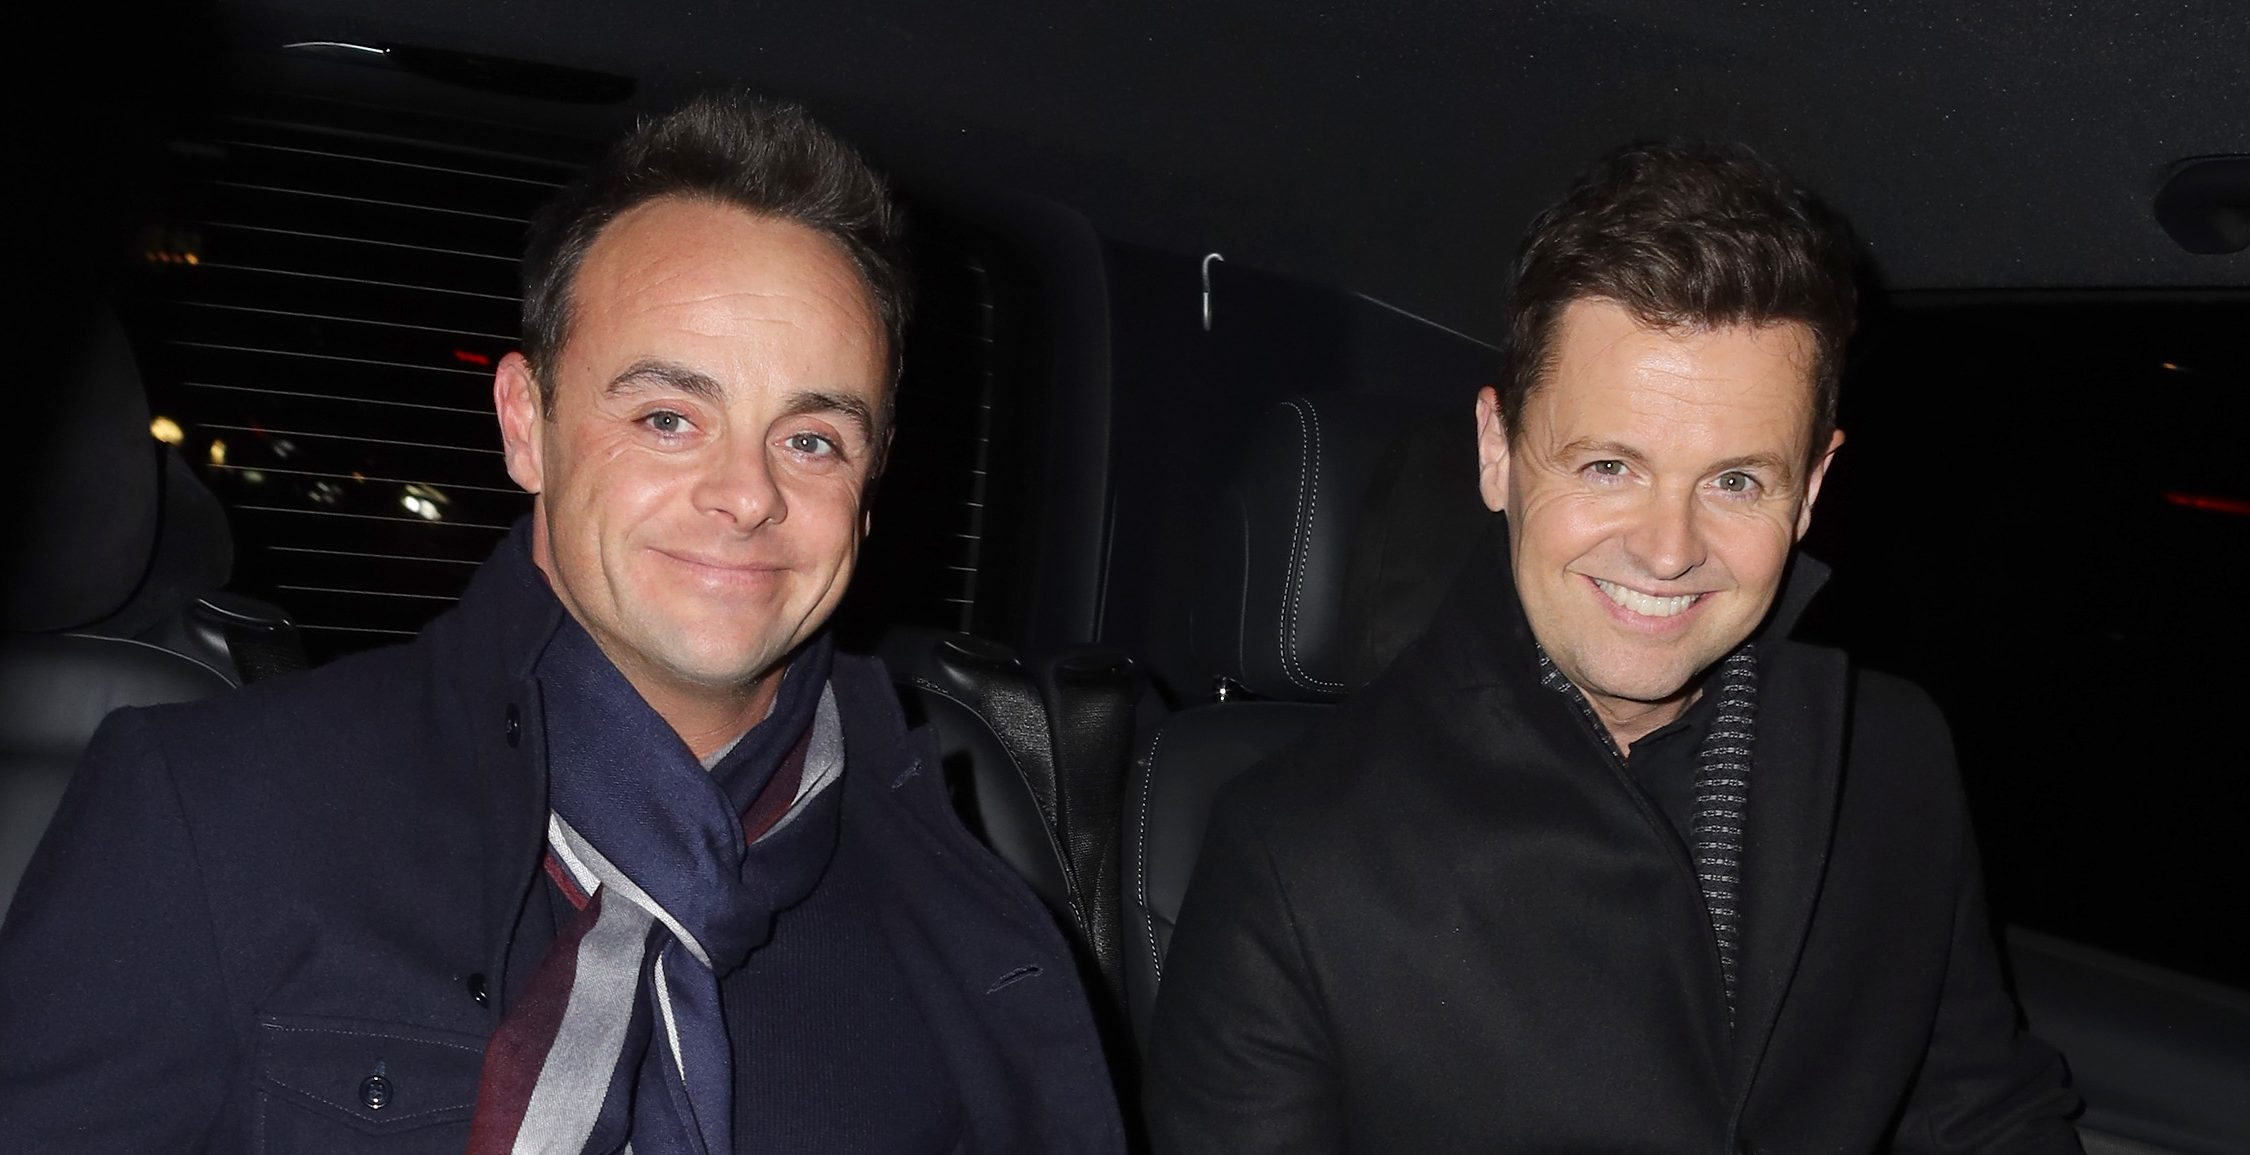 Declan Donnelly gives first candid interview about Ant McPartlin's addiction battle